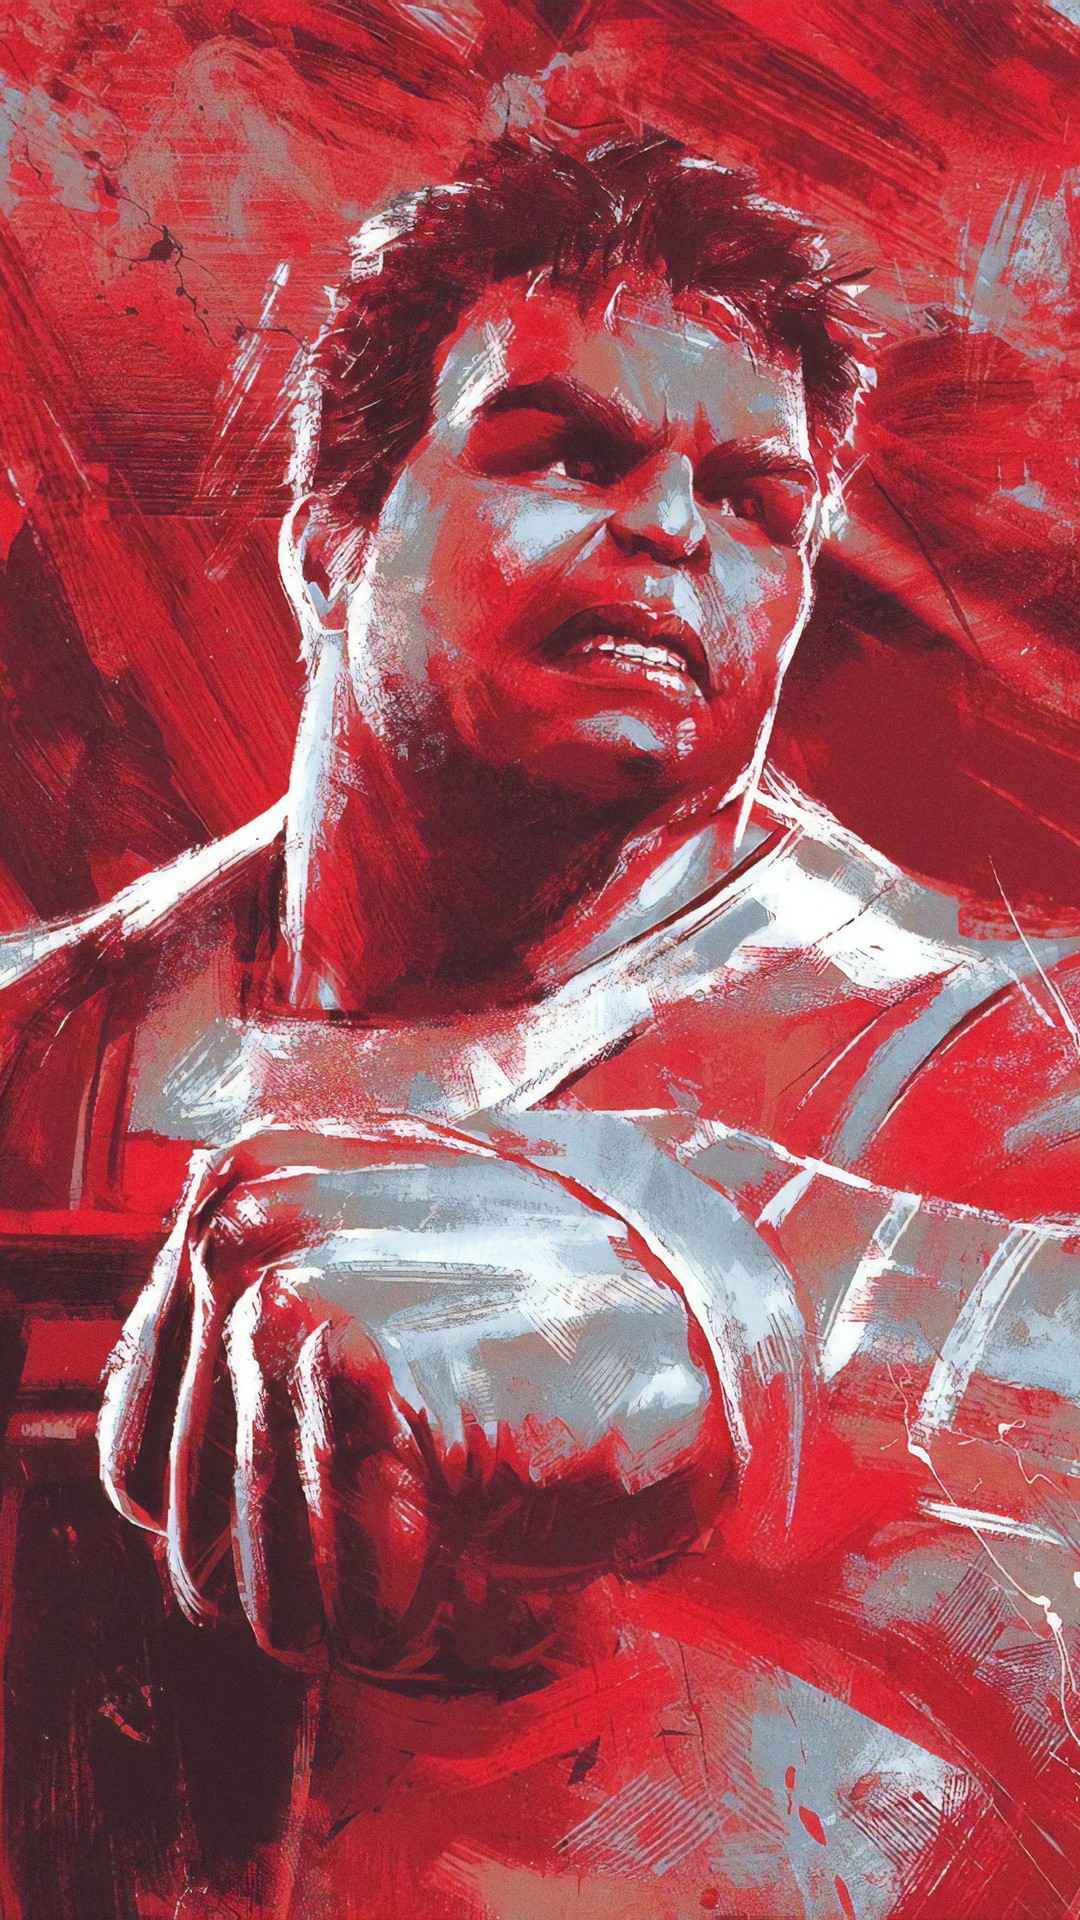 Avengers Endgame Professor Hulk Red Art iPhone Wallpaper